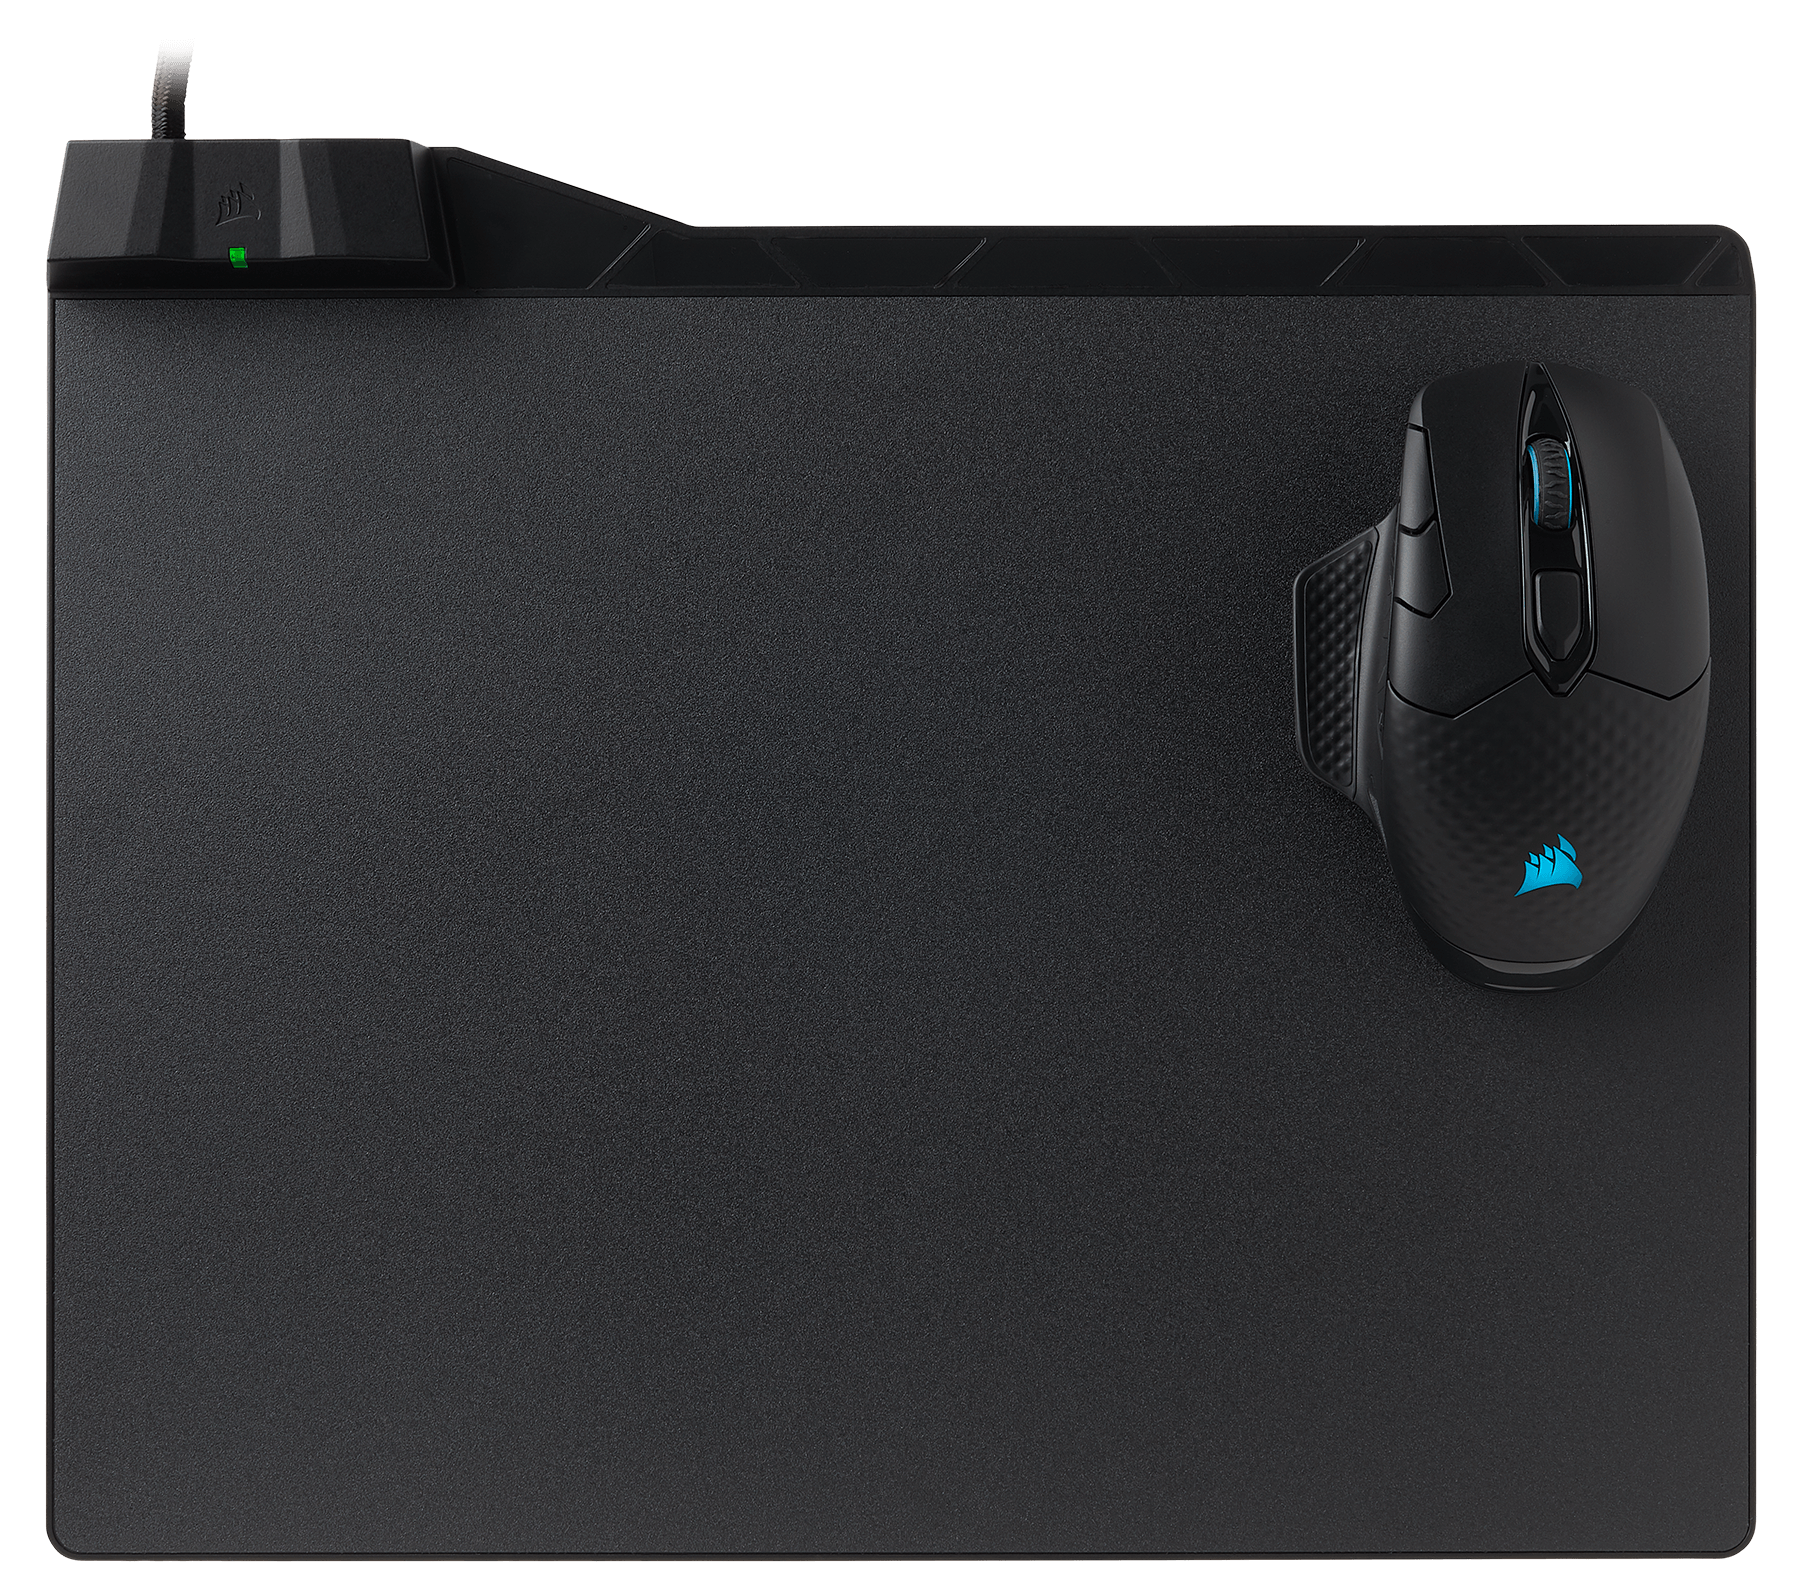 73b7b833a58 Corsair at CES 2018: Dark Core RGB SE and MM1000Qi - Wireless Charging  Mouse and Mouse Pad